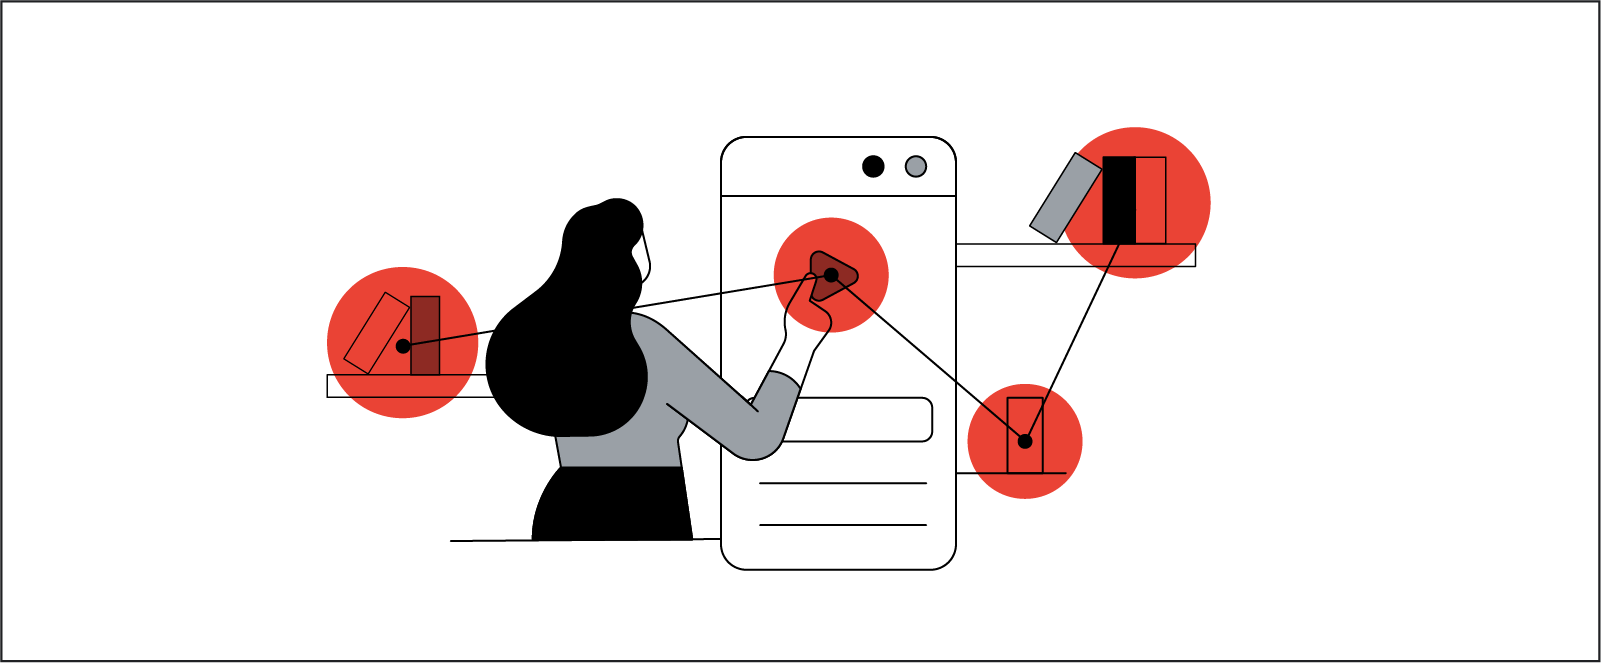 Stylized illustration of a woman interacting with apps on an oversized mobile phone.